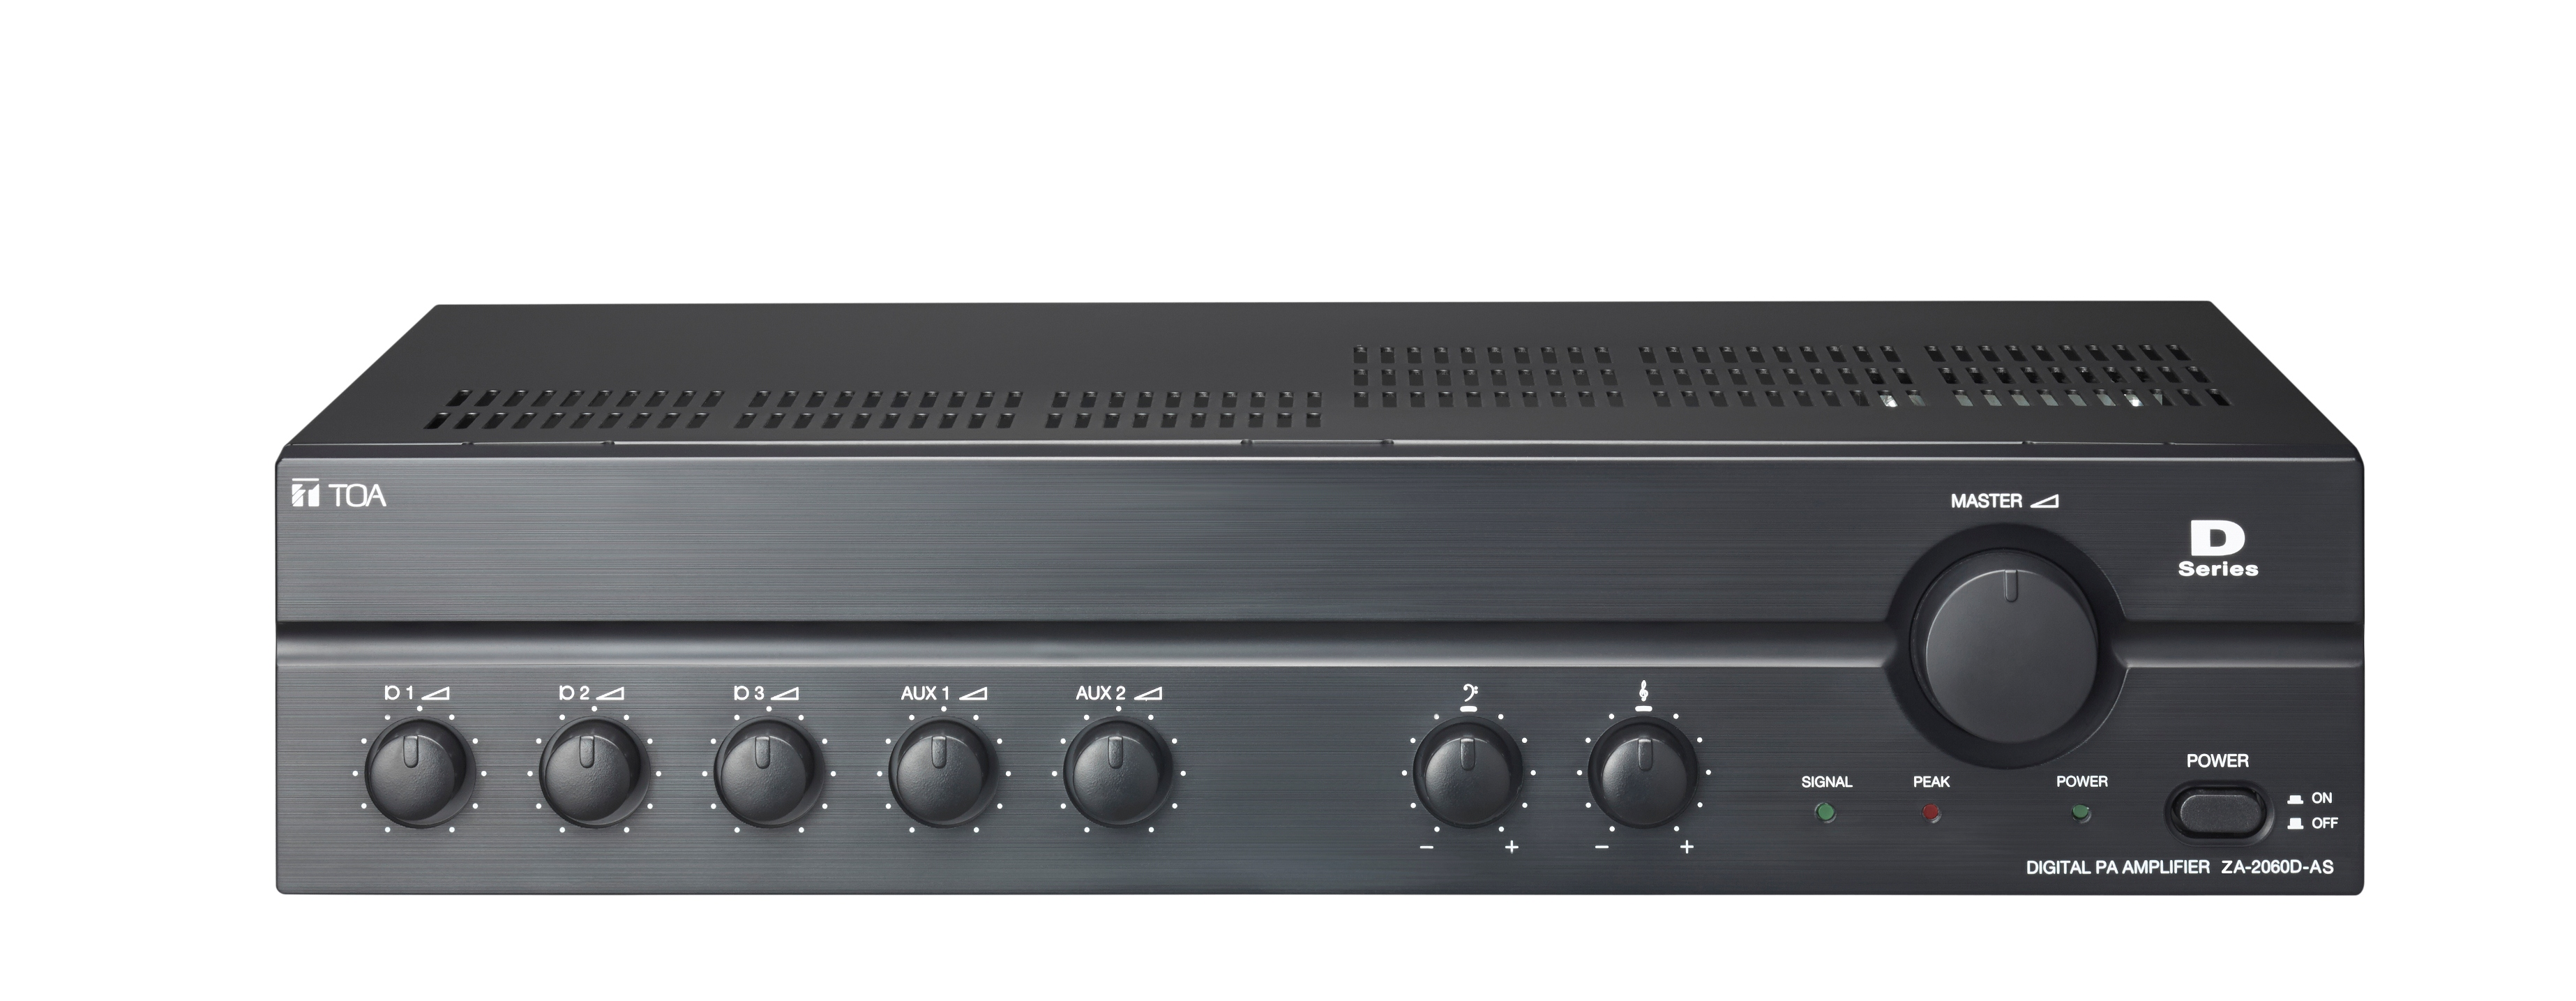 ZA-2060D-AS Digital PA Amplifier